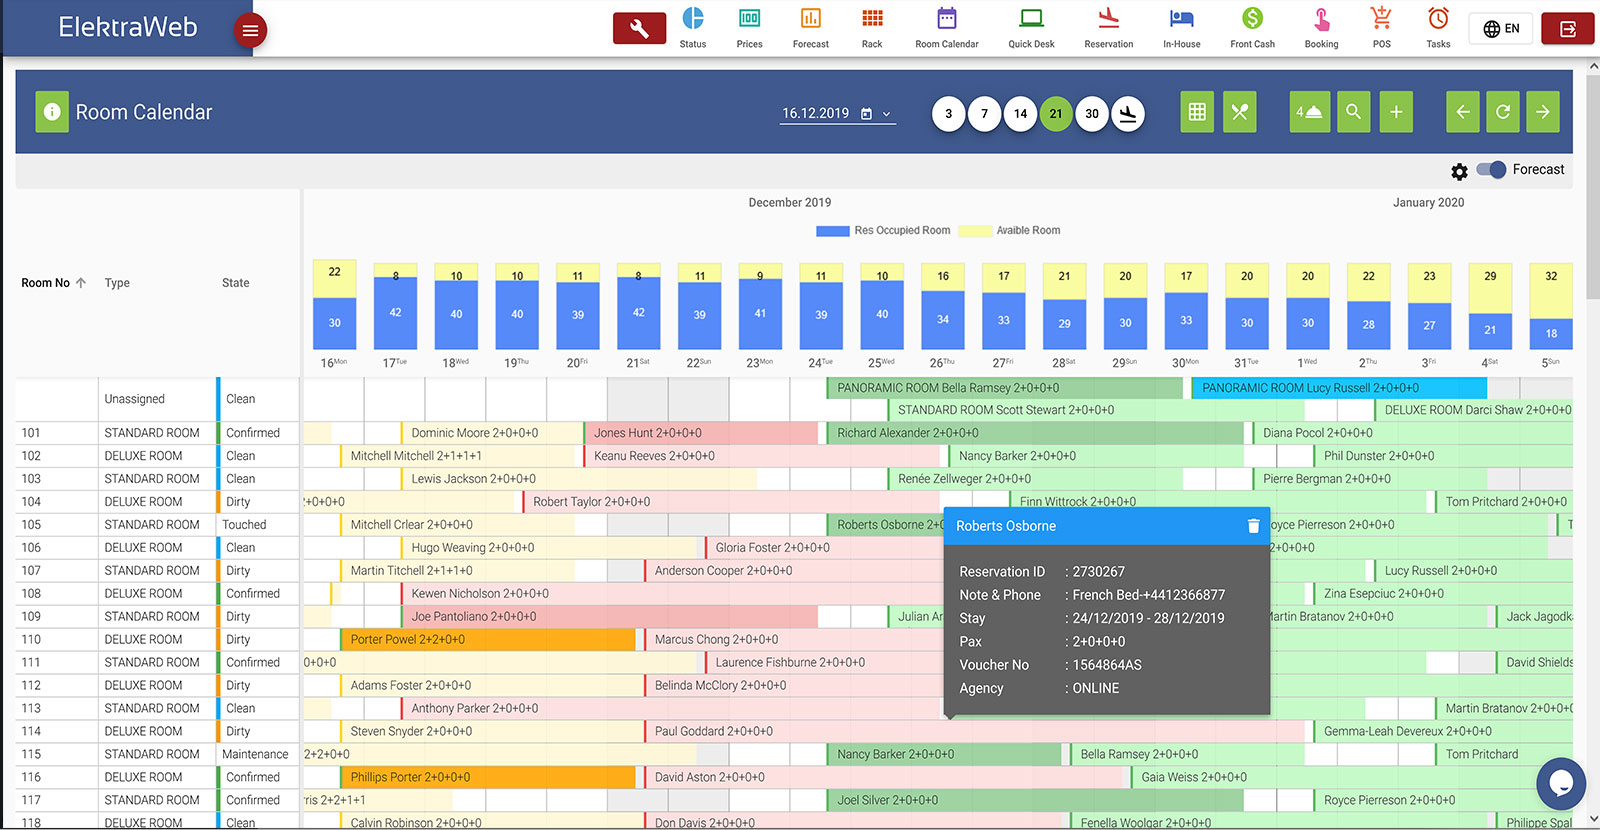 Hotel Program Fully-Featured PMS-Elektraweb Hotel Management System Room Calendar,Hotel Software